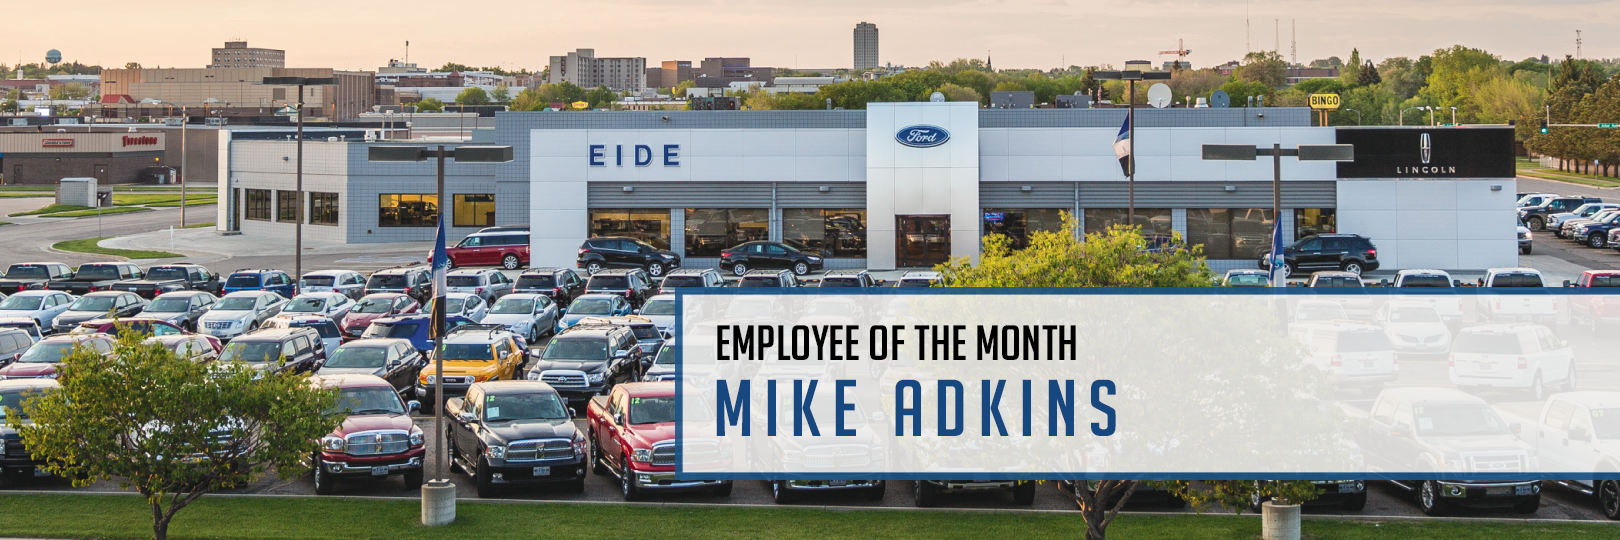 Mike Adkins Employee of the Month